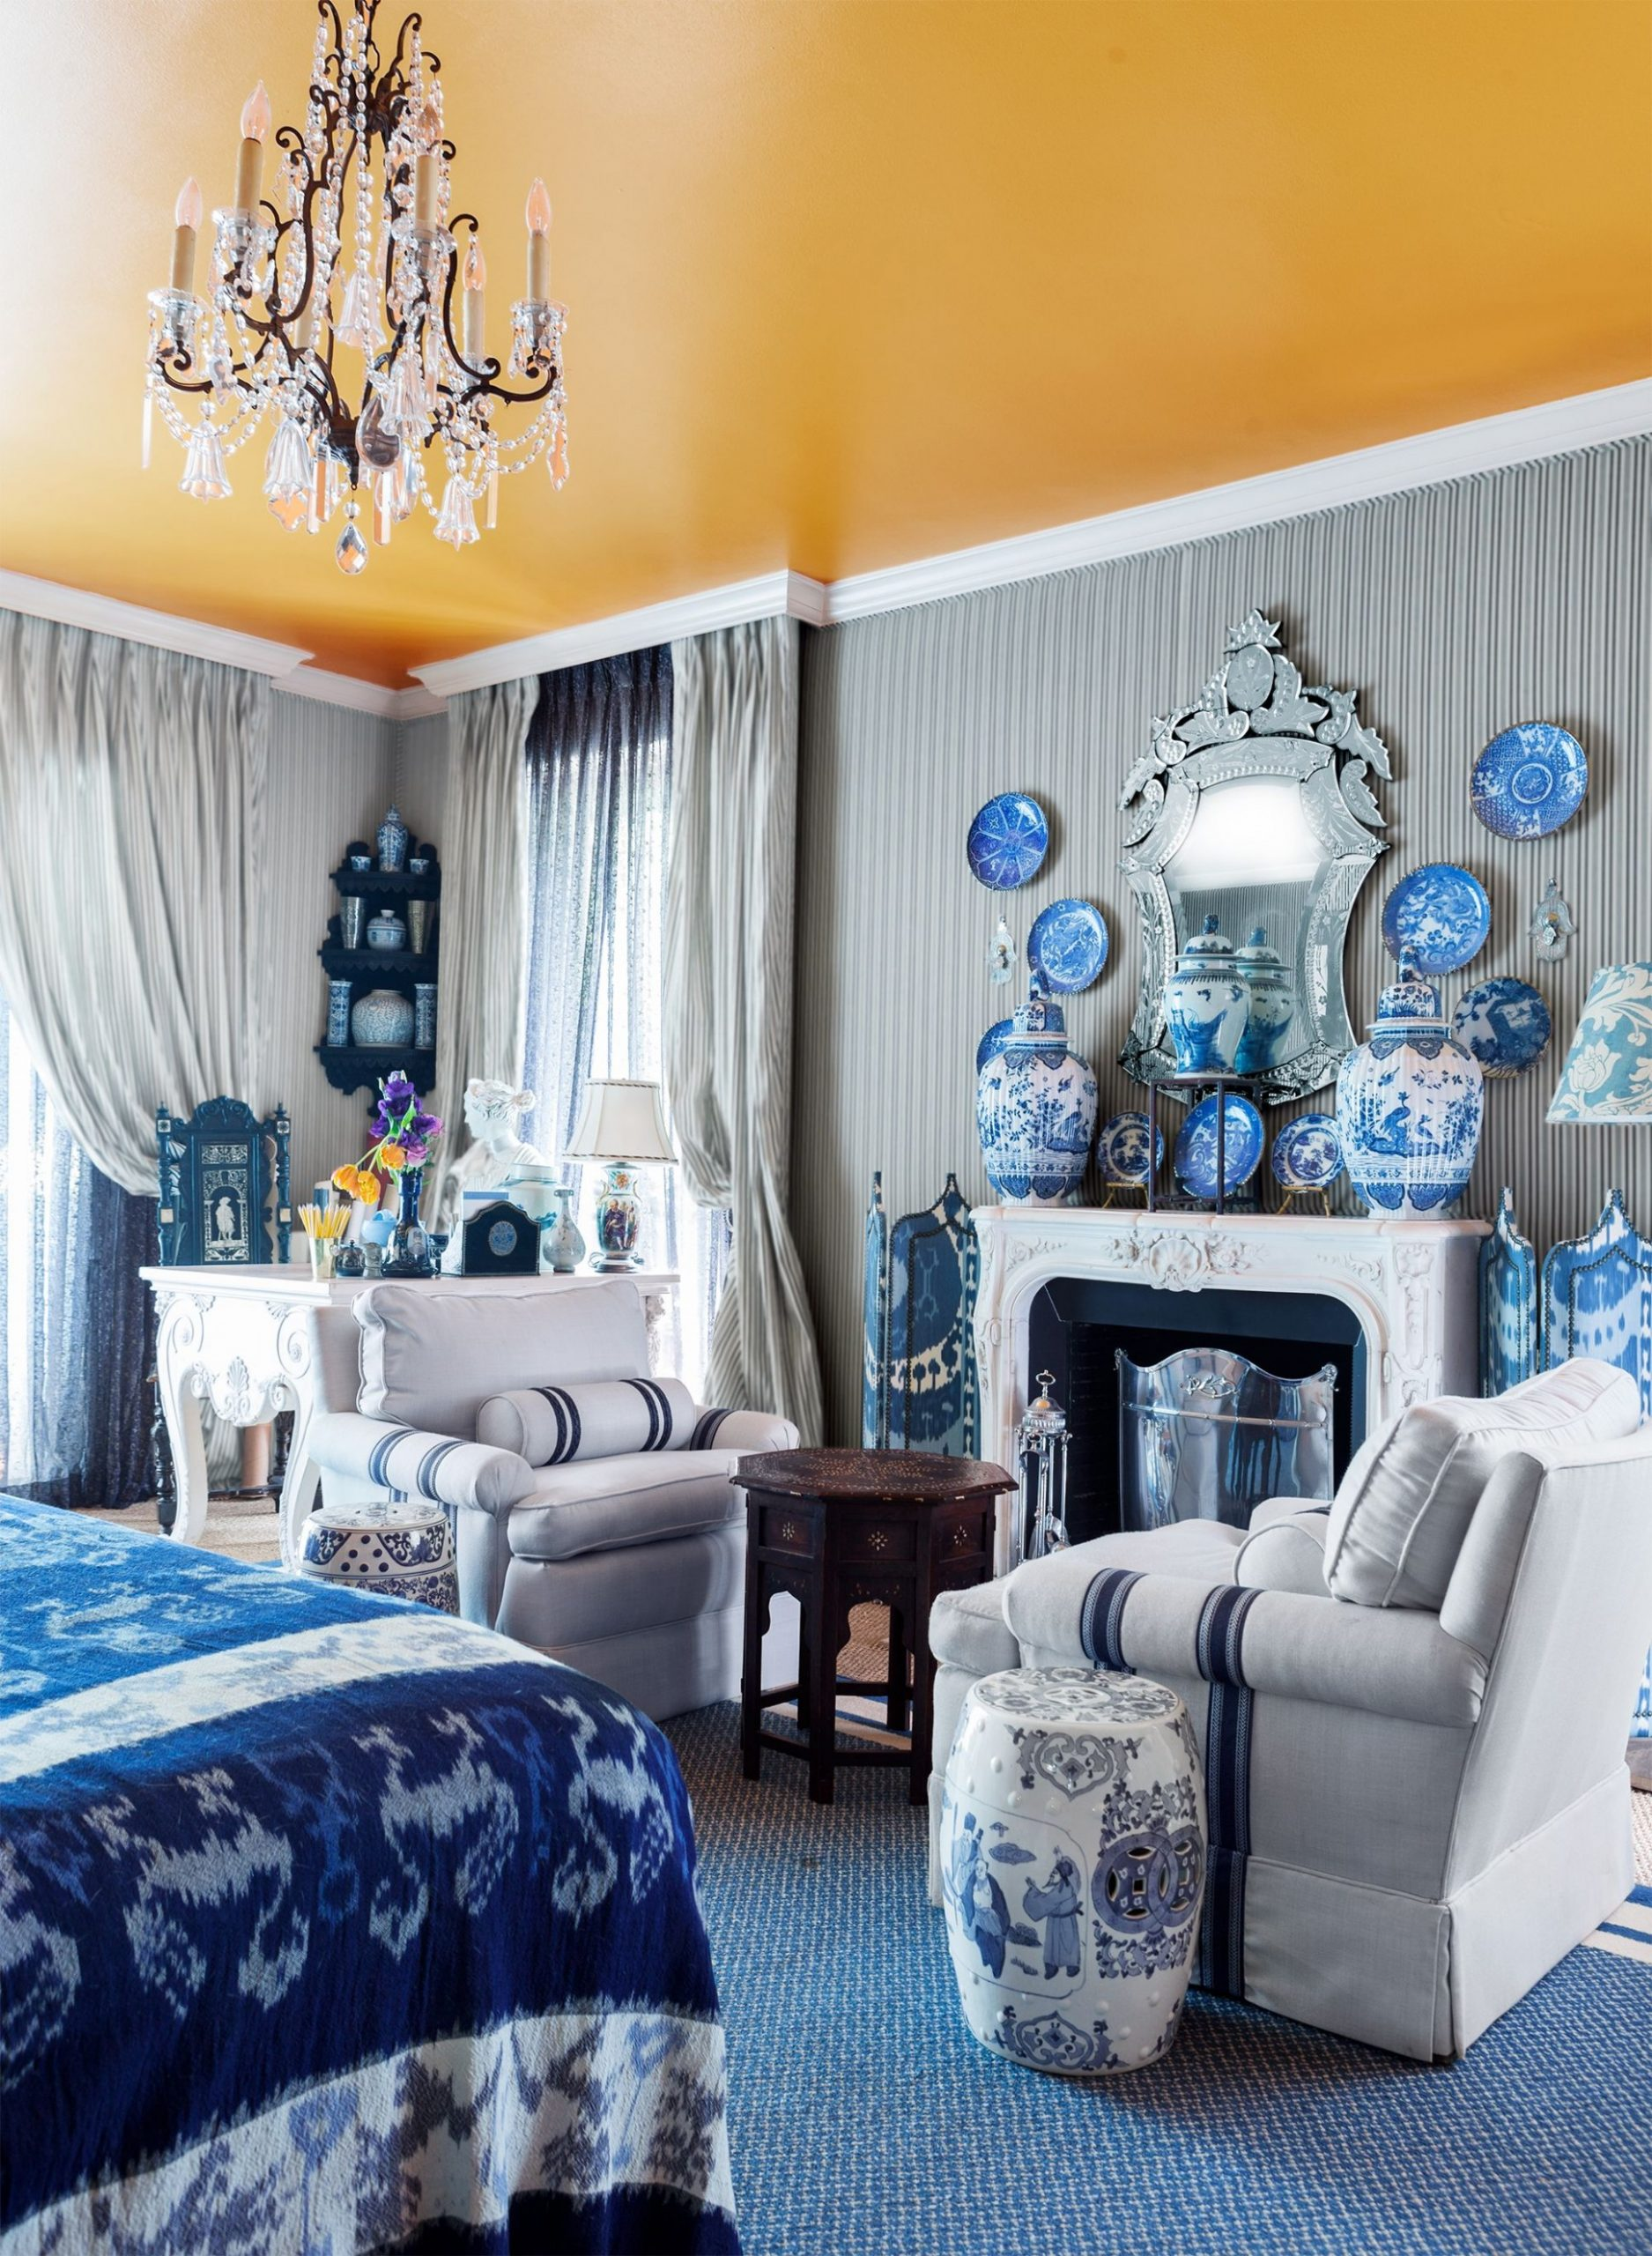 12 Cheerful Yellow Bedrooms - Chic Ideas for Yellow Bedroom Decor - Bedroom Ideas Yellow And Blue